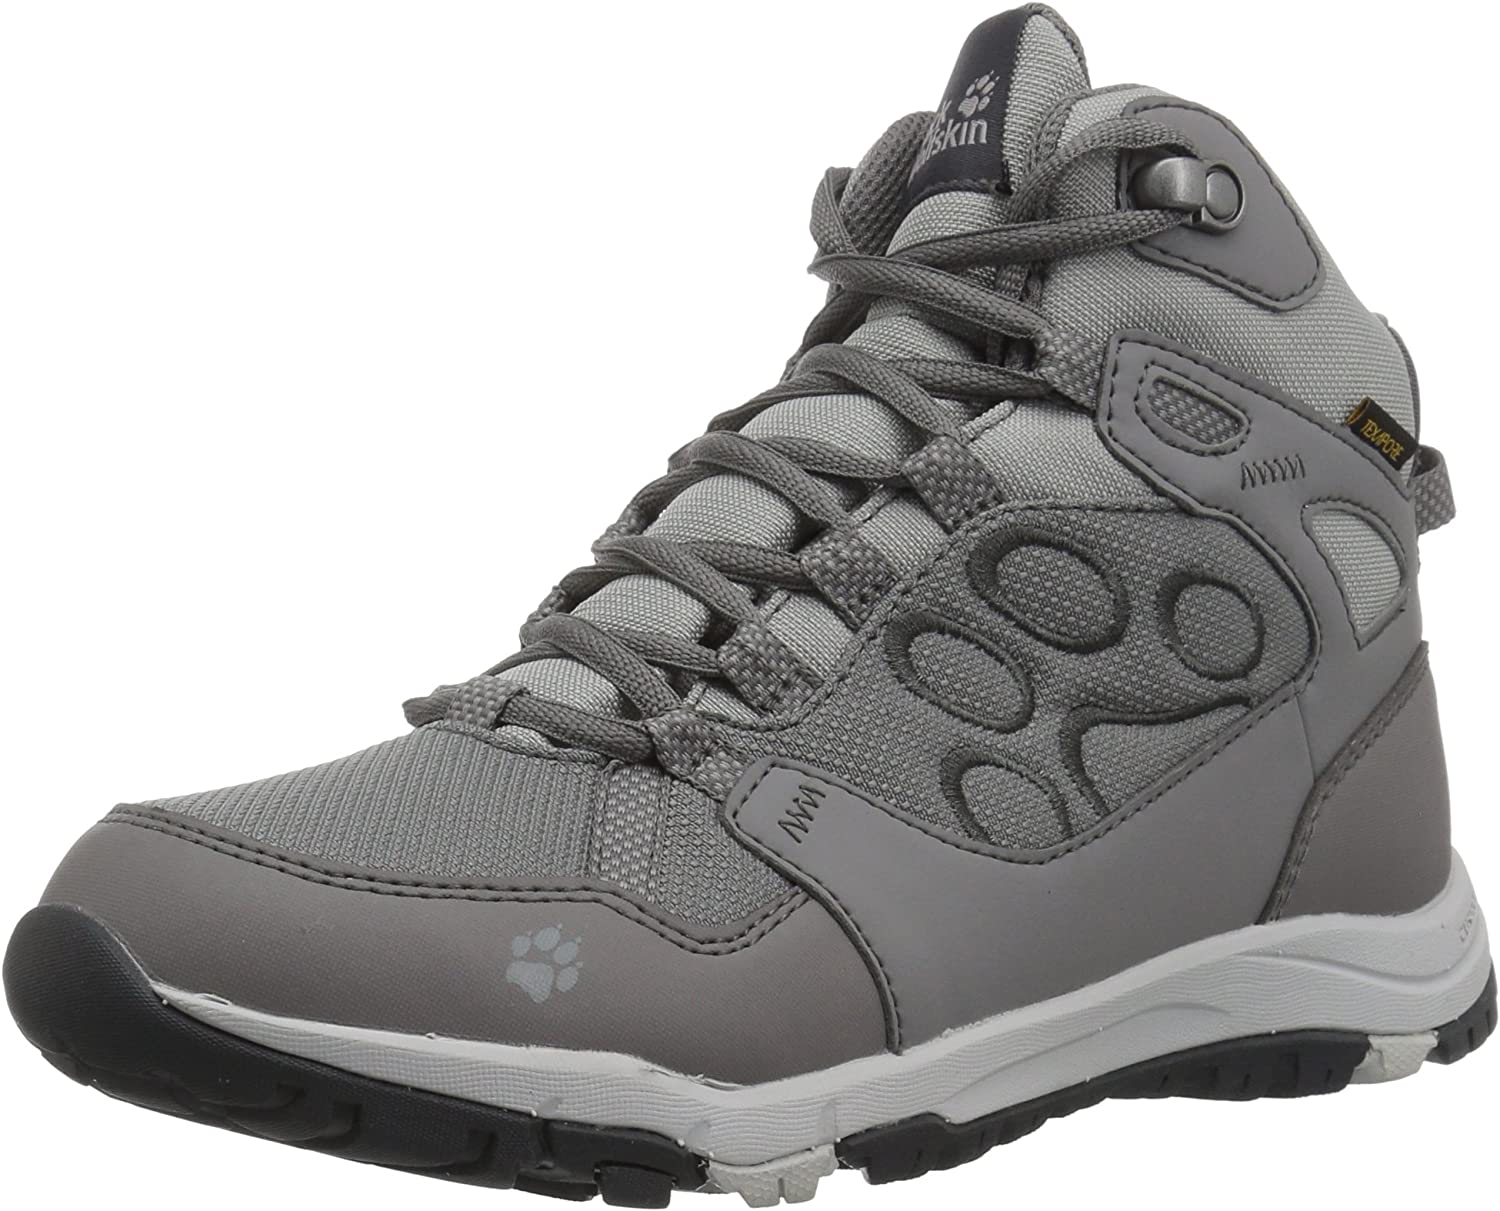 Jack Wolfskin Womens Activate Texapore Mid W Hiking Boot